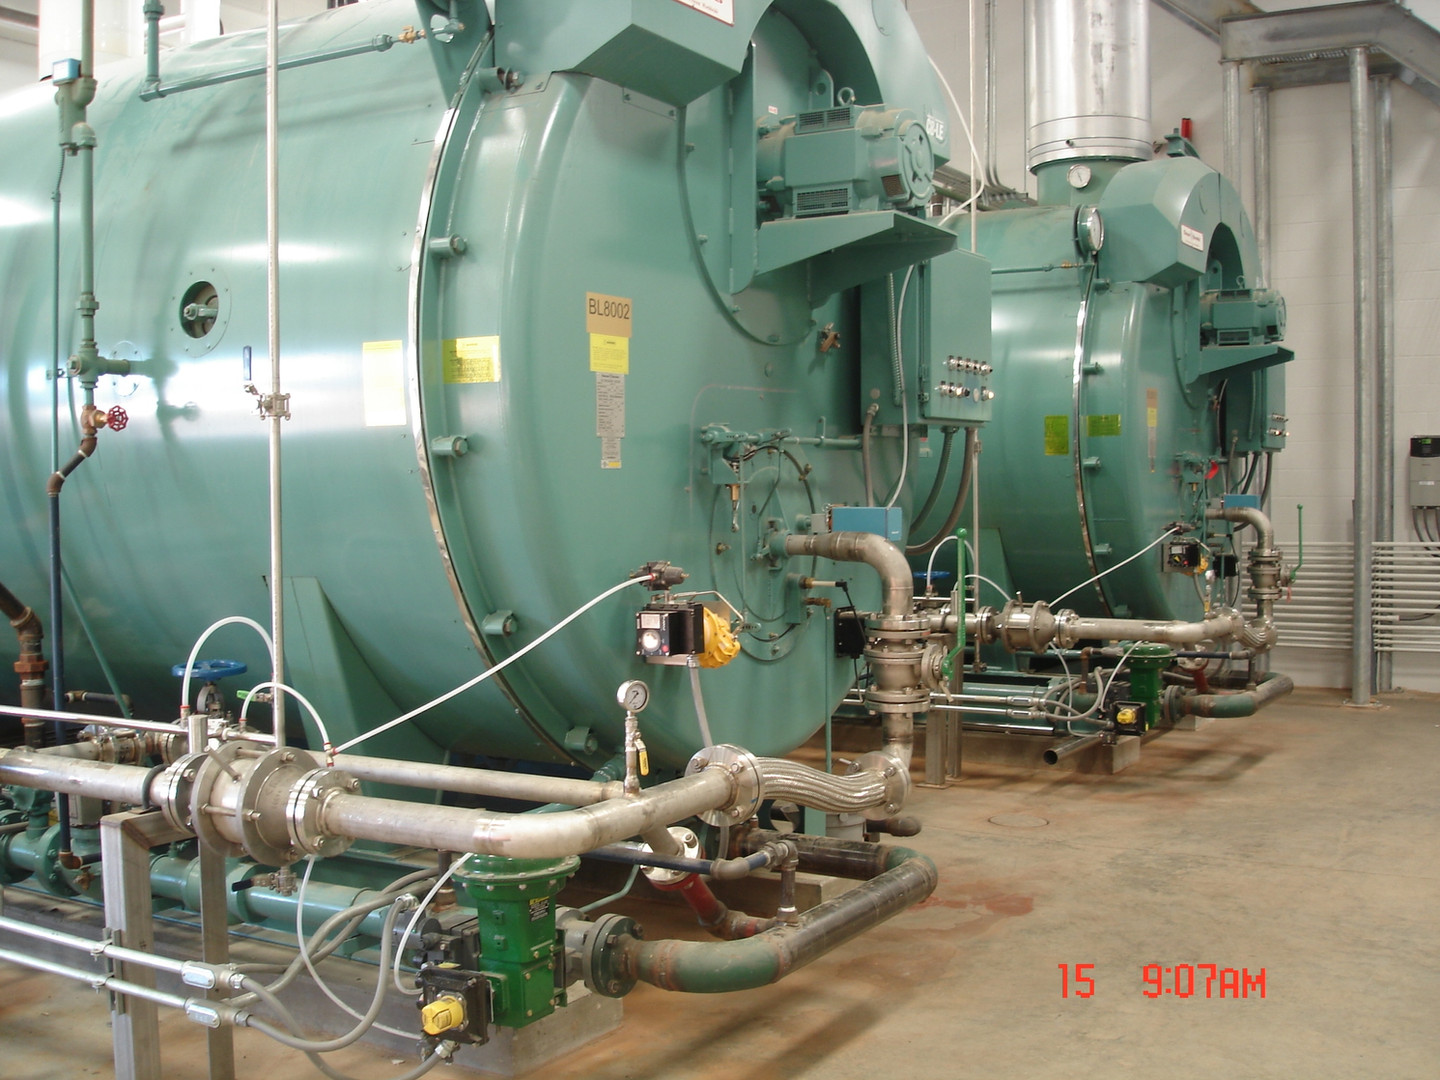 Ocean Spray boiler piping 2.JPG